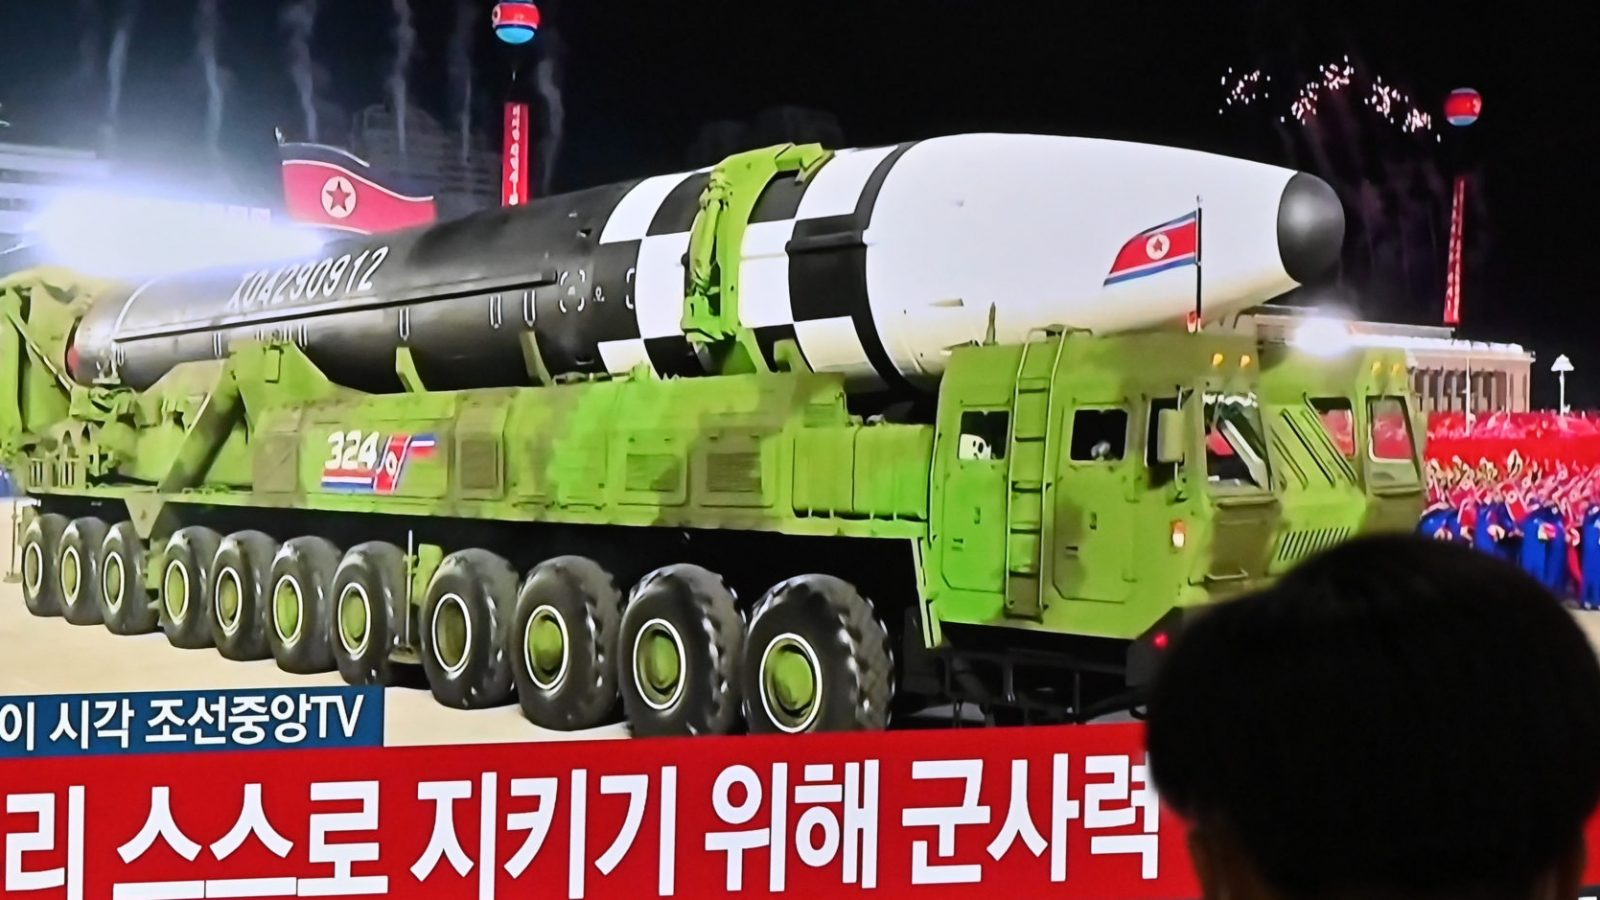 A man watches a television screen showing Korean characters and a North Korean missile on a green military truck.